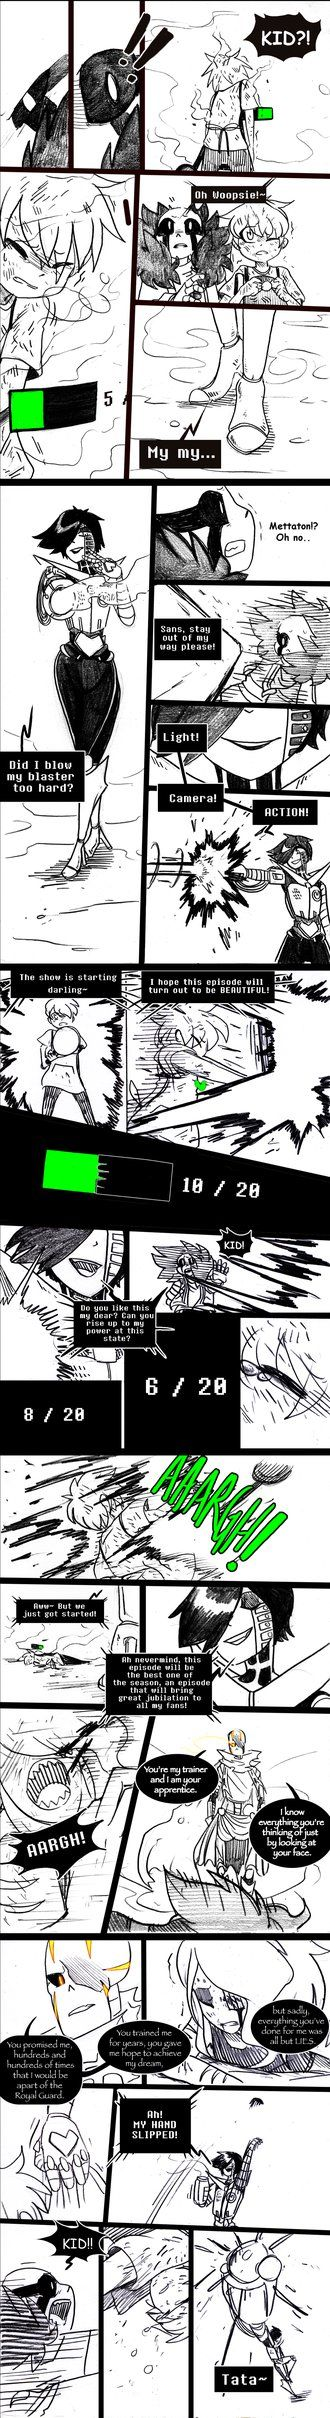 Anamnesis Part 4 - 46-50 by GolzyBlazey.deviantart.com on @DeviantArt